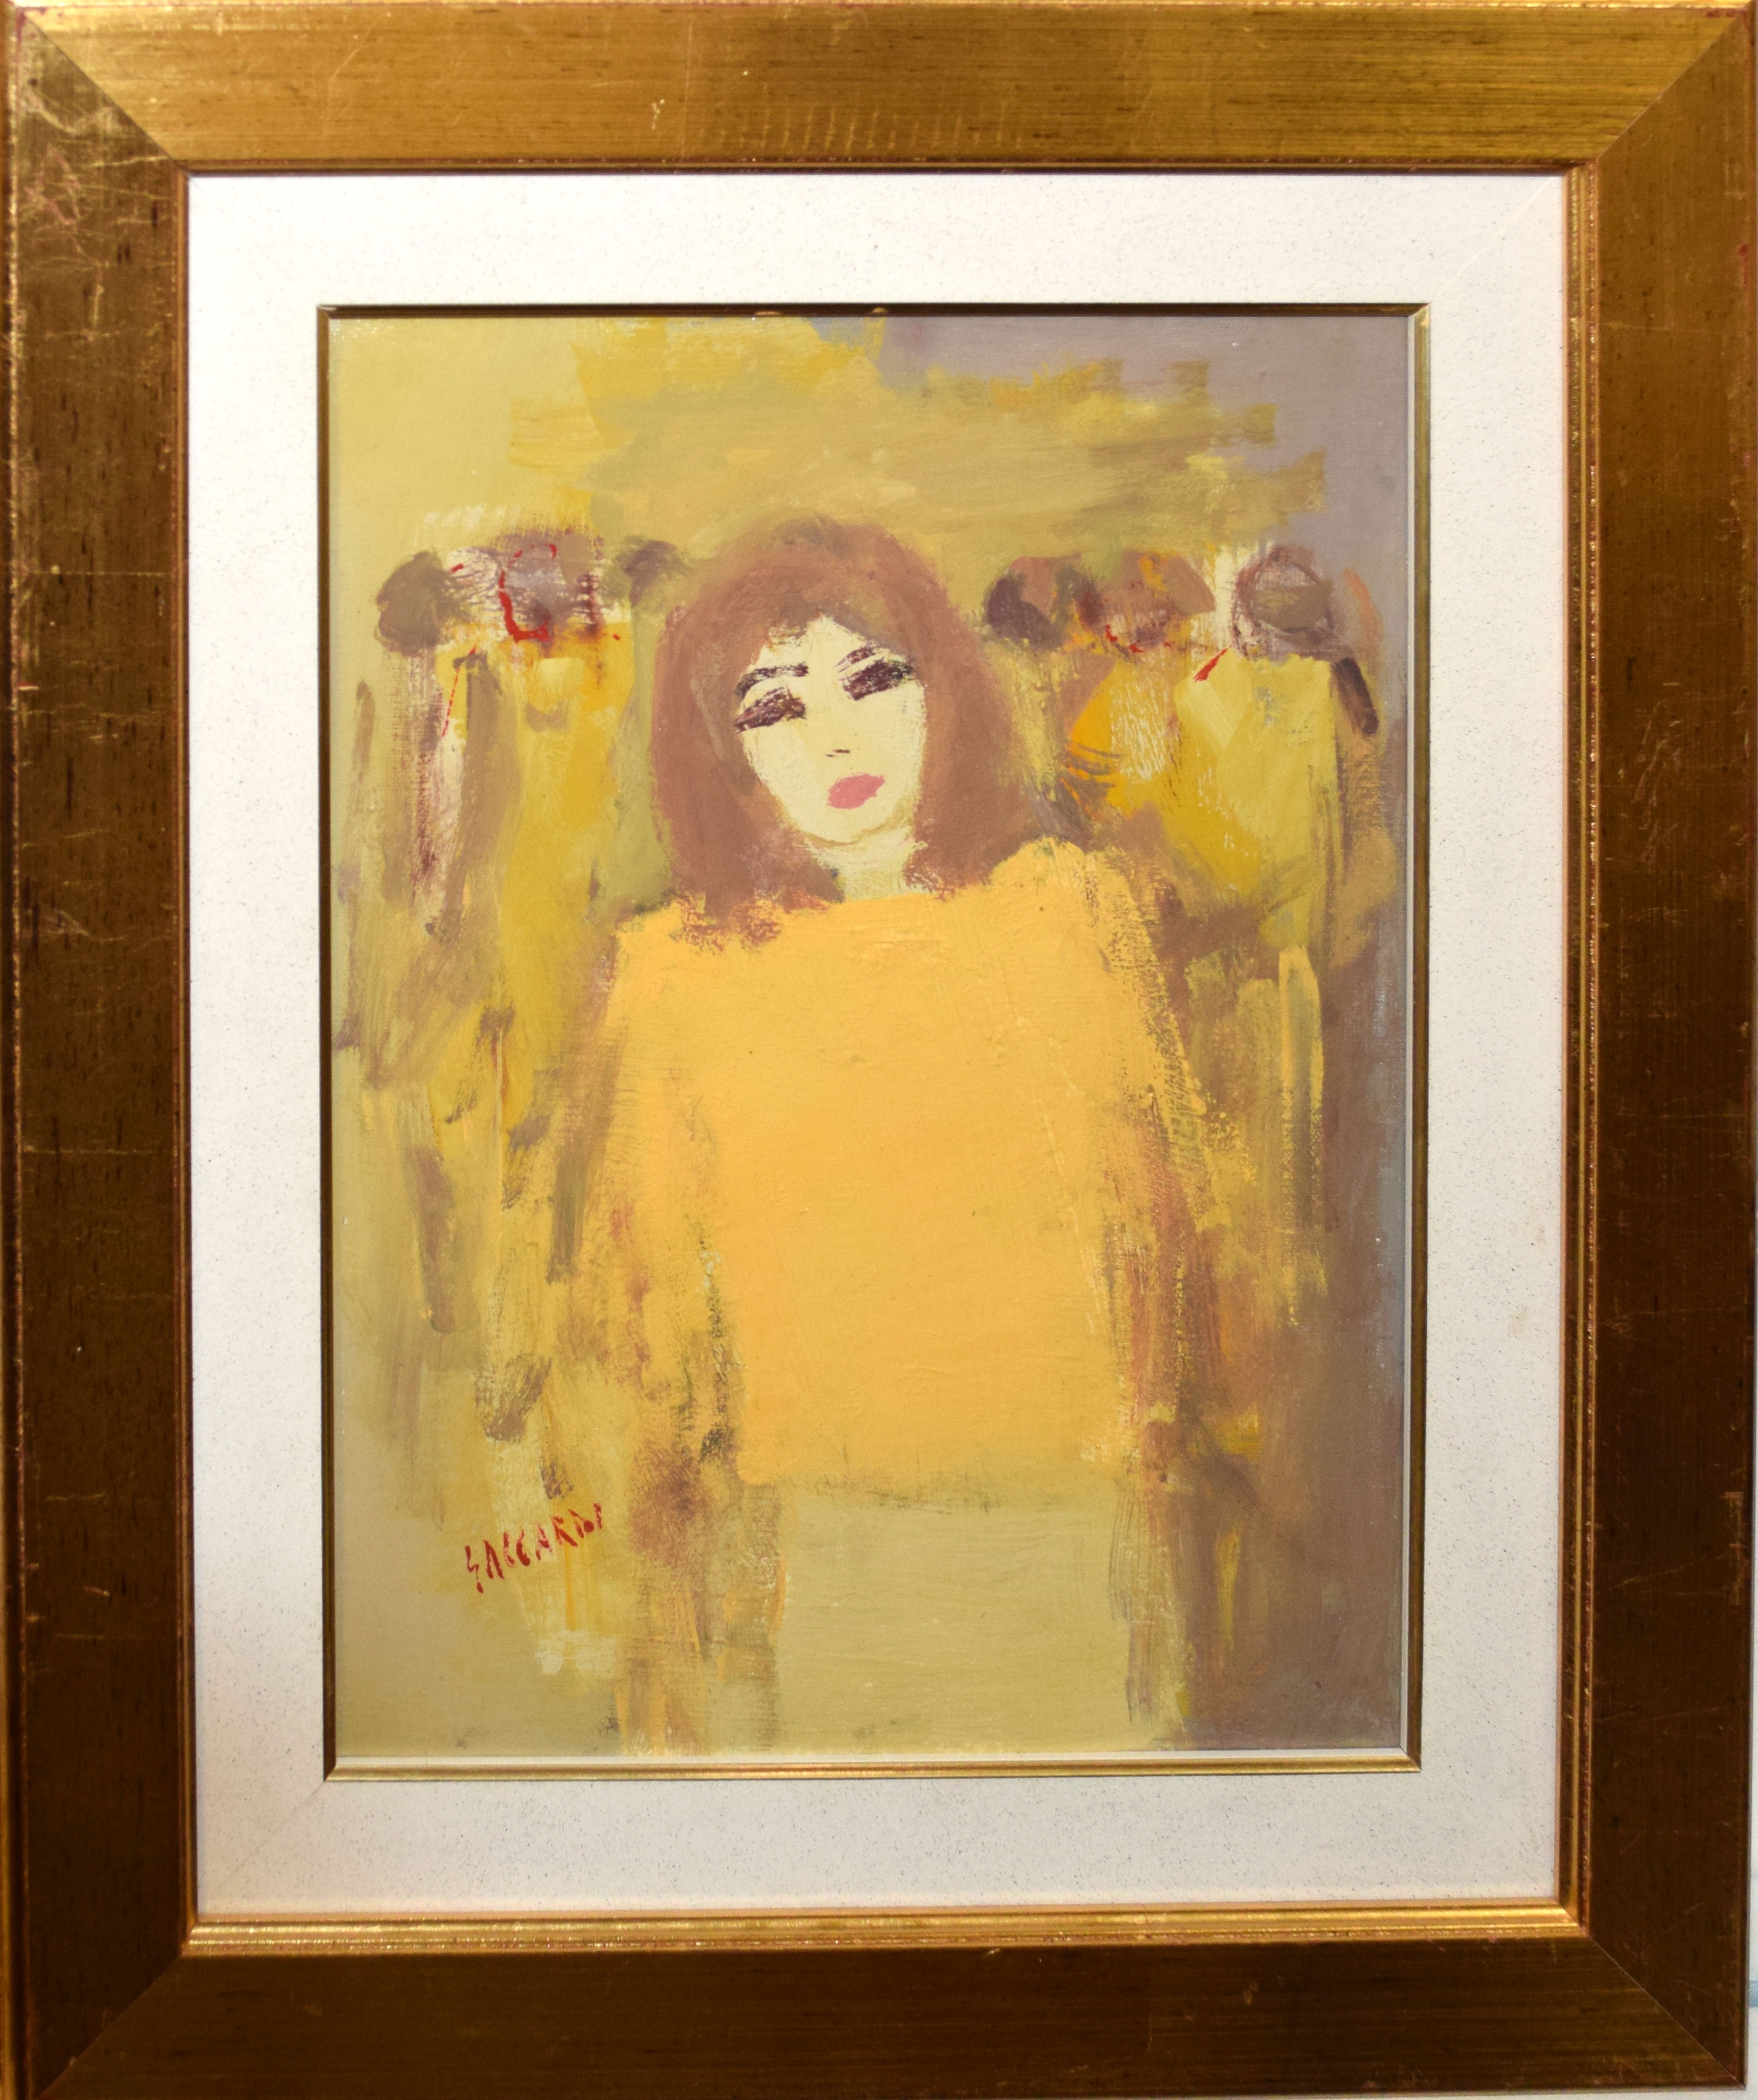 •AR Carlo Saccardi (1921-1997), Woman in yellow dress, oil on canvas, signed lower left, 39 x 29cm